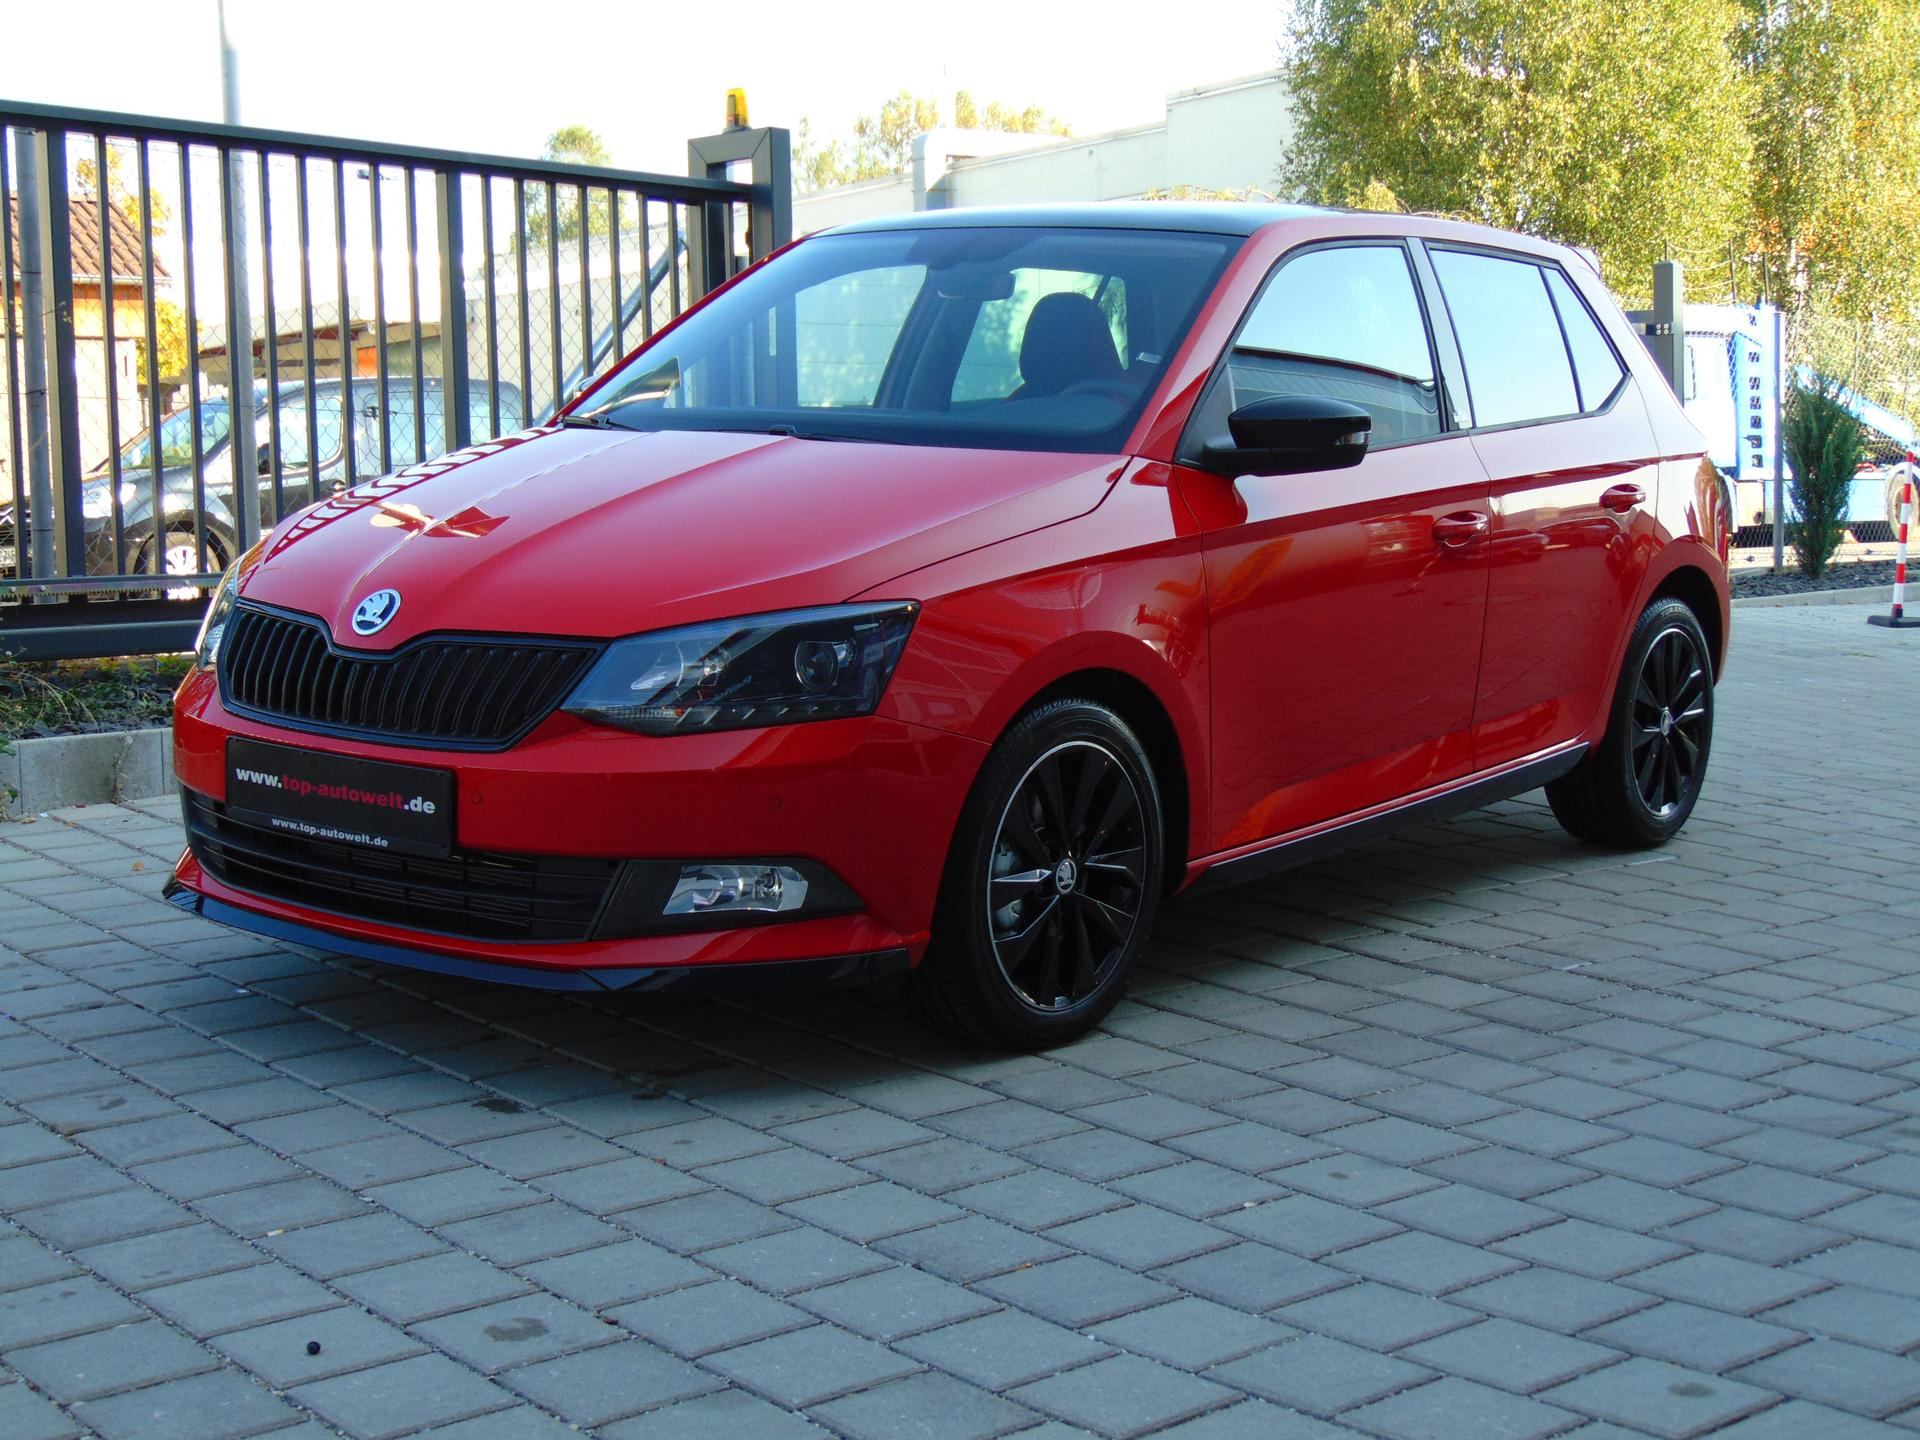 skoda fabia monte carlo 1 0 tsi 110 ps dsg automatik 5 j gar bis km klima. Black Bedroom Furniture Sets. Home Design Ideas